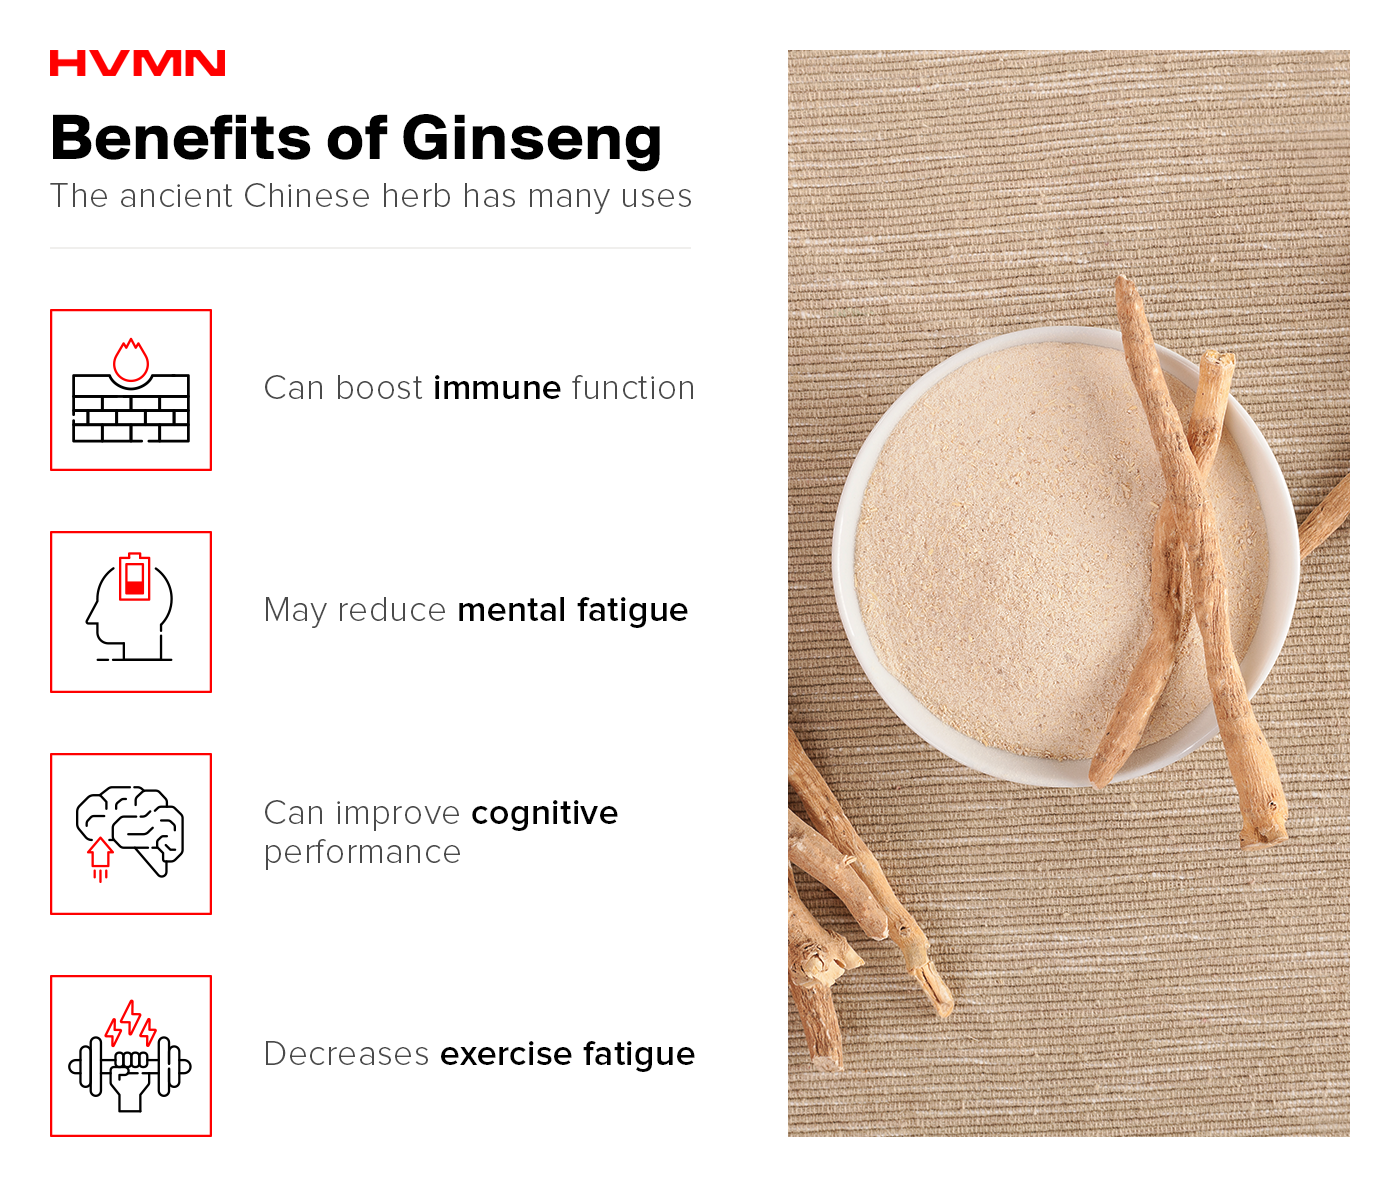 An image of raw ginseng, with icons of a brick wall, a brain, and a weight lifter, showing the benefits of ginseng